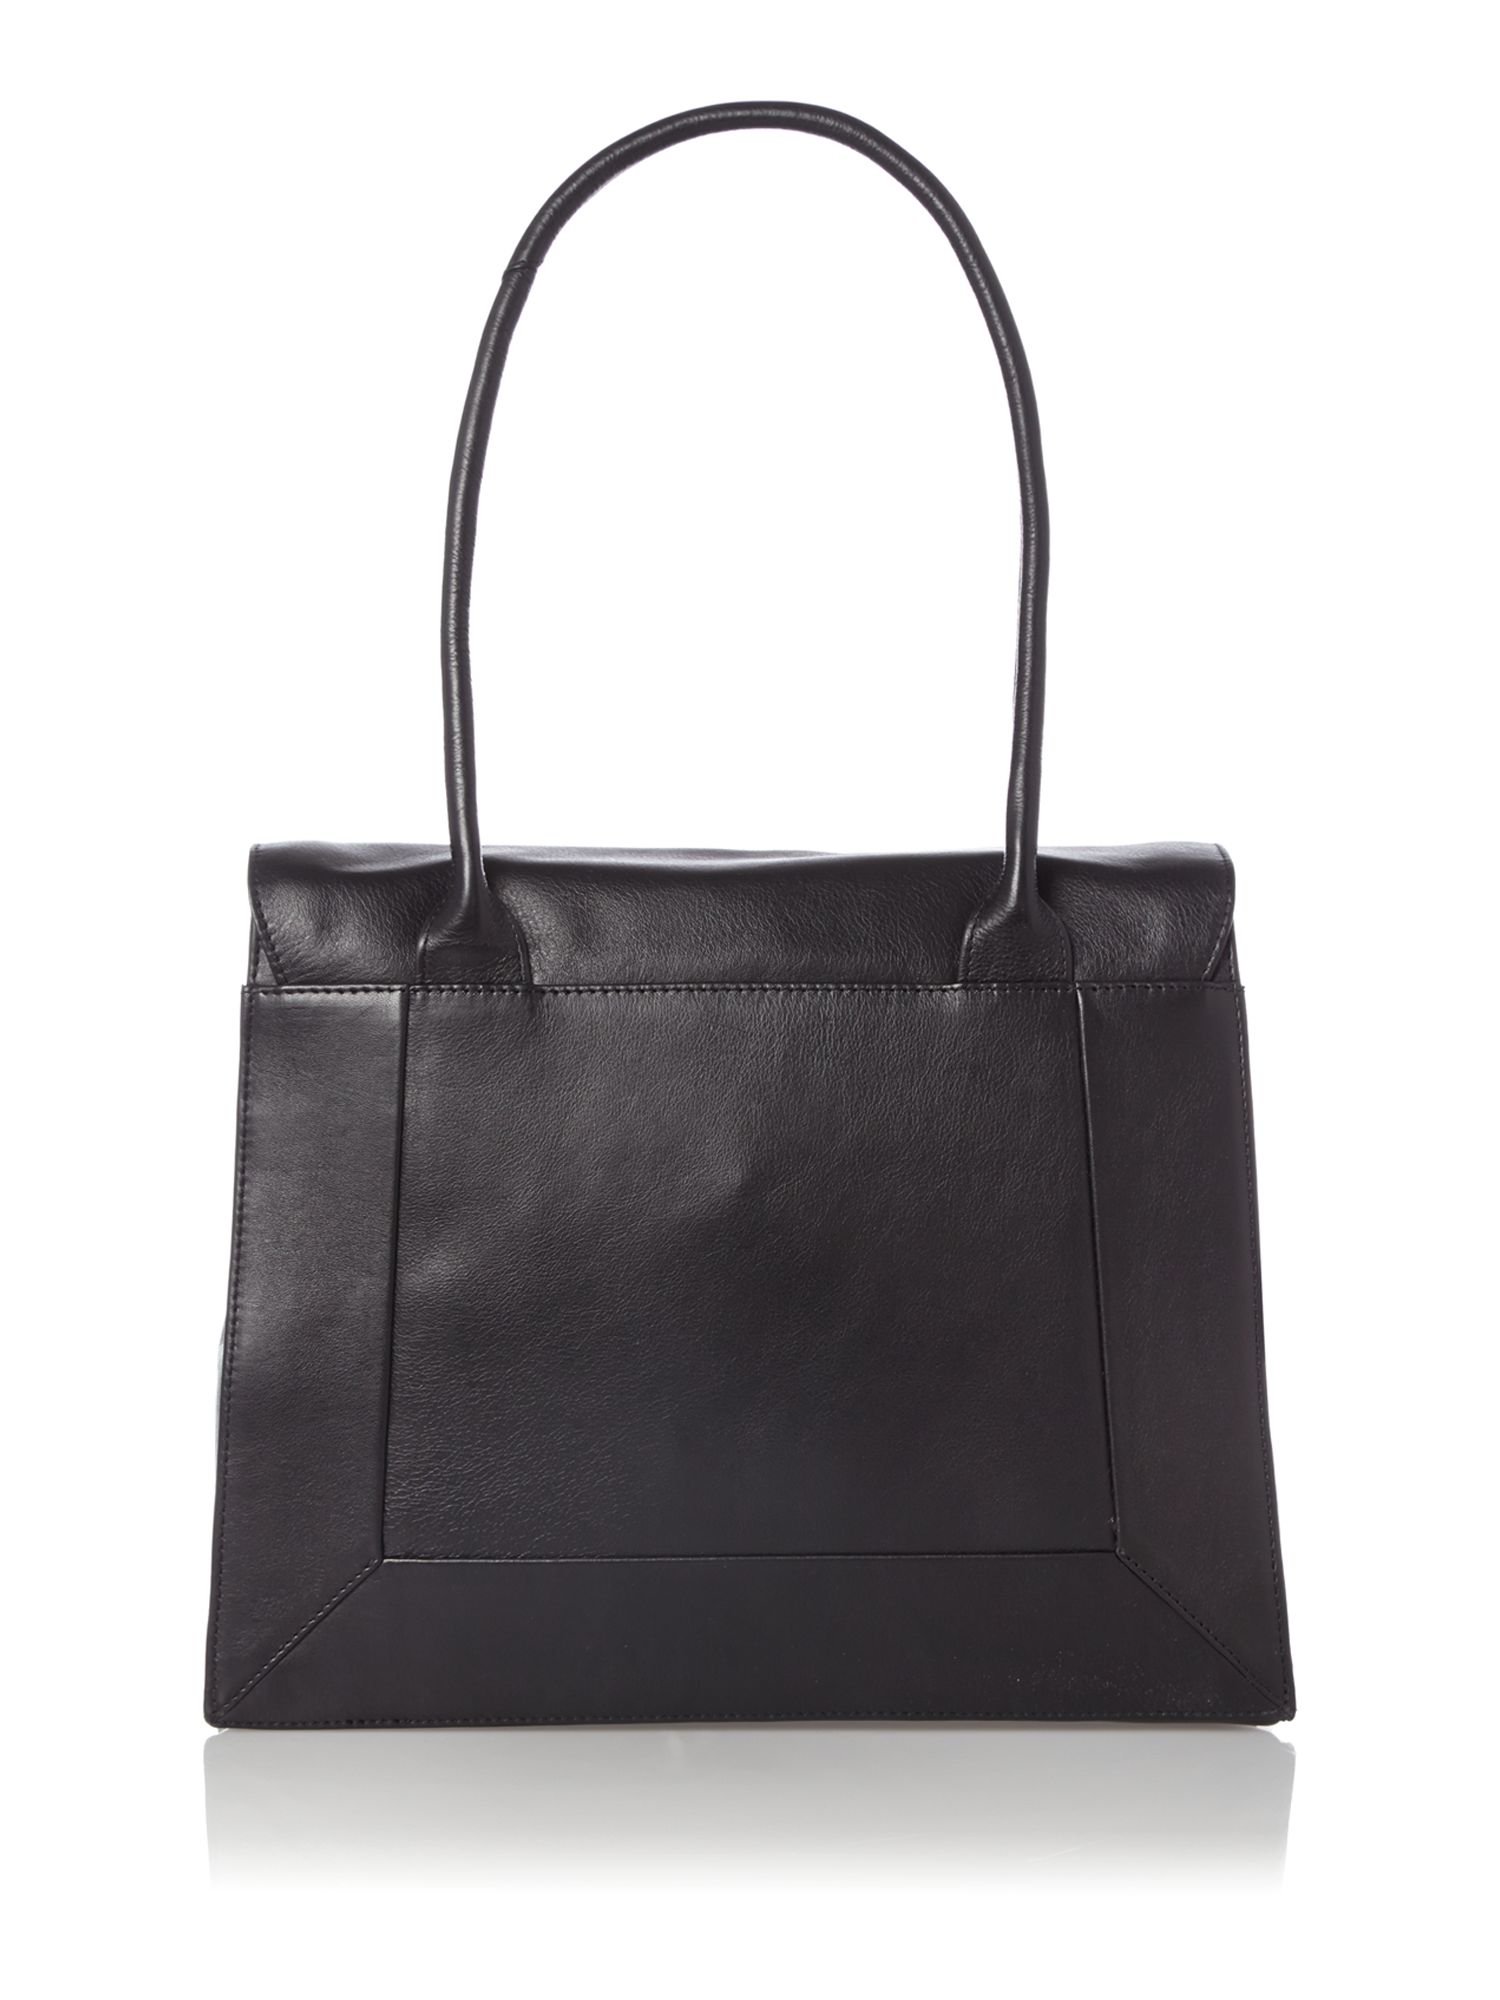 Border black leather large flapover tote bag